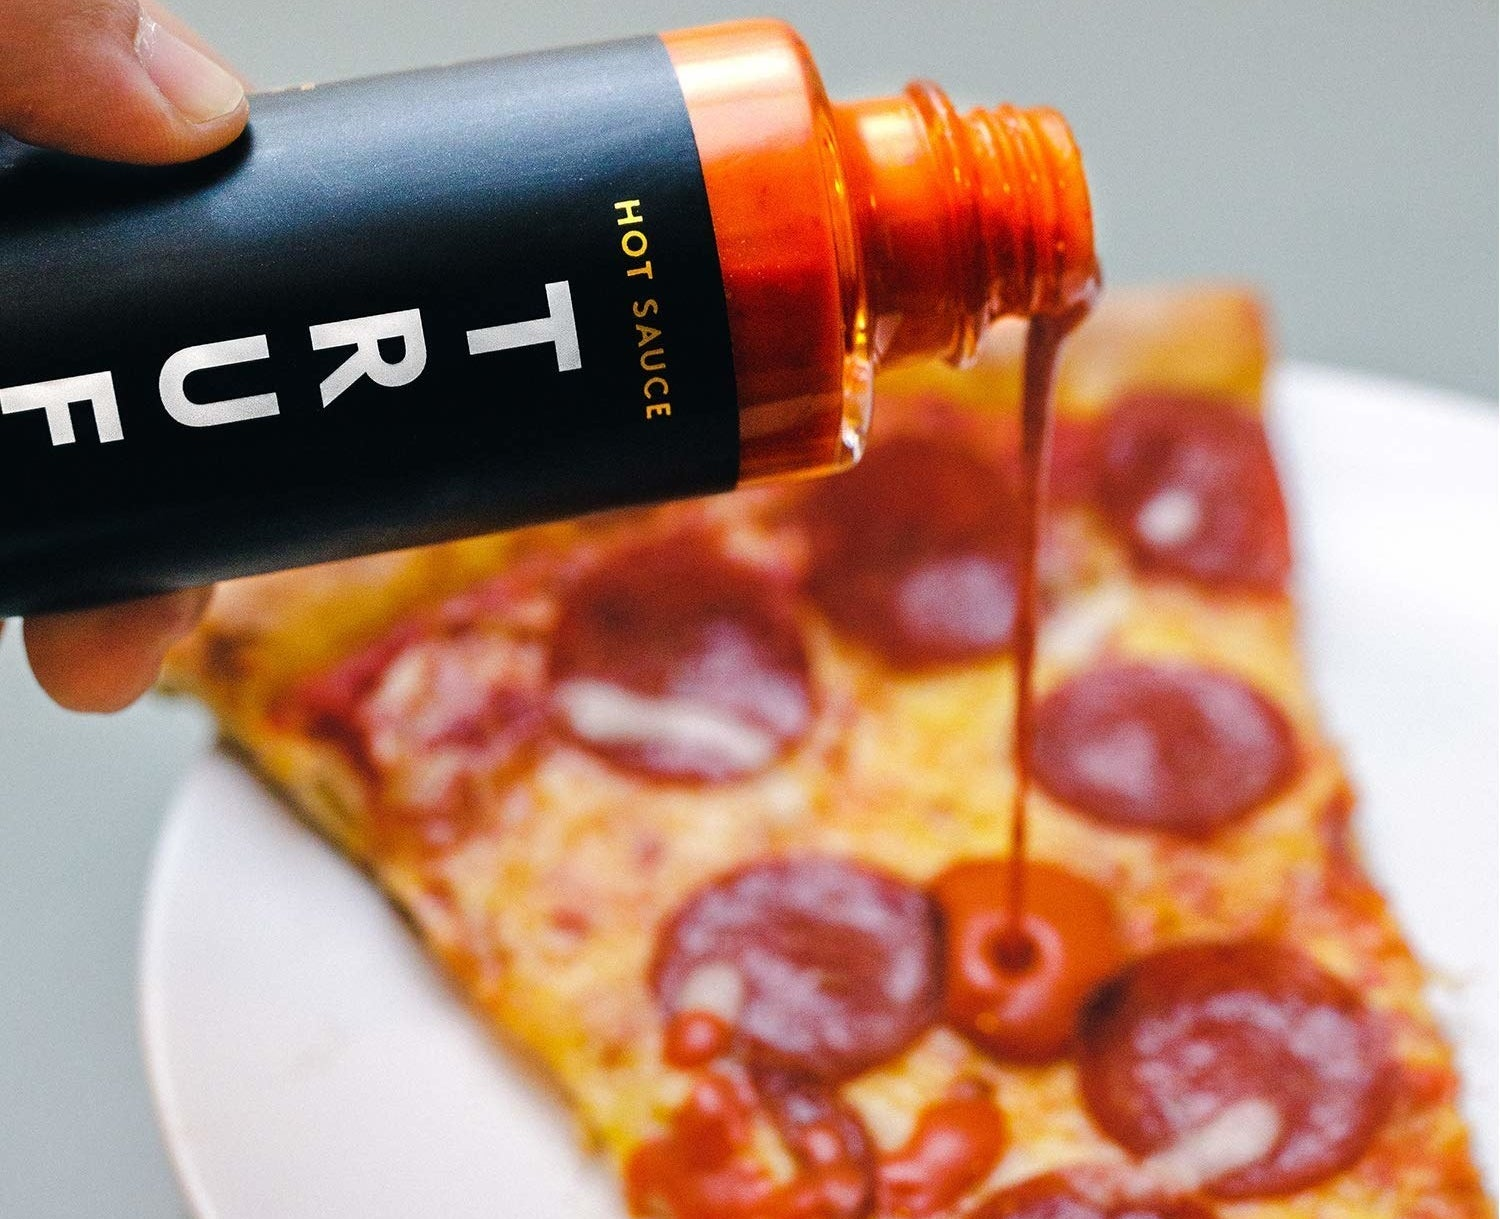 A person putting the truffle hot sauce on pepperoni pizza